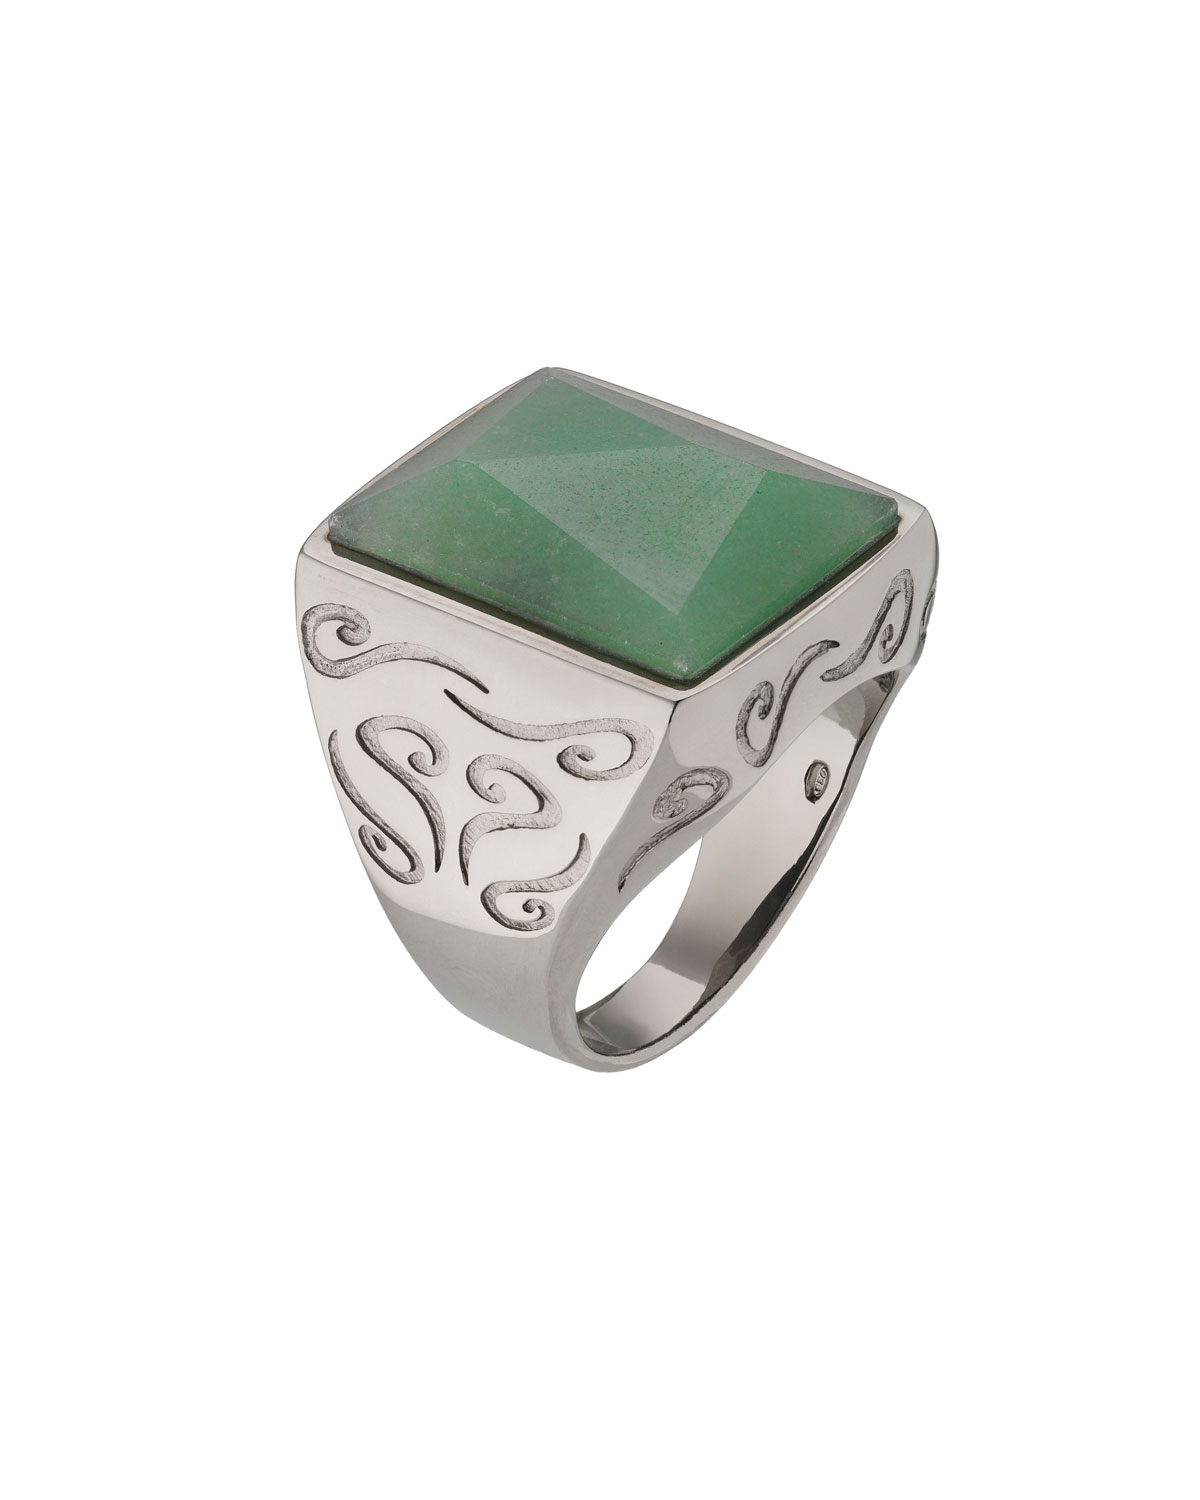 MARCO DAL MASO MEN'S ARA PYRAMID RING WITH GREEN AVENTURINE, SIZE 10